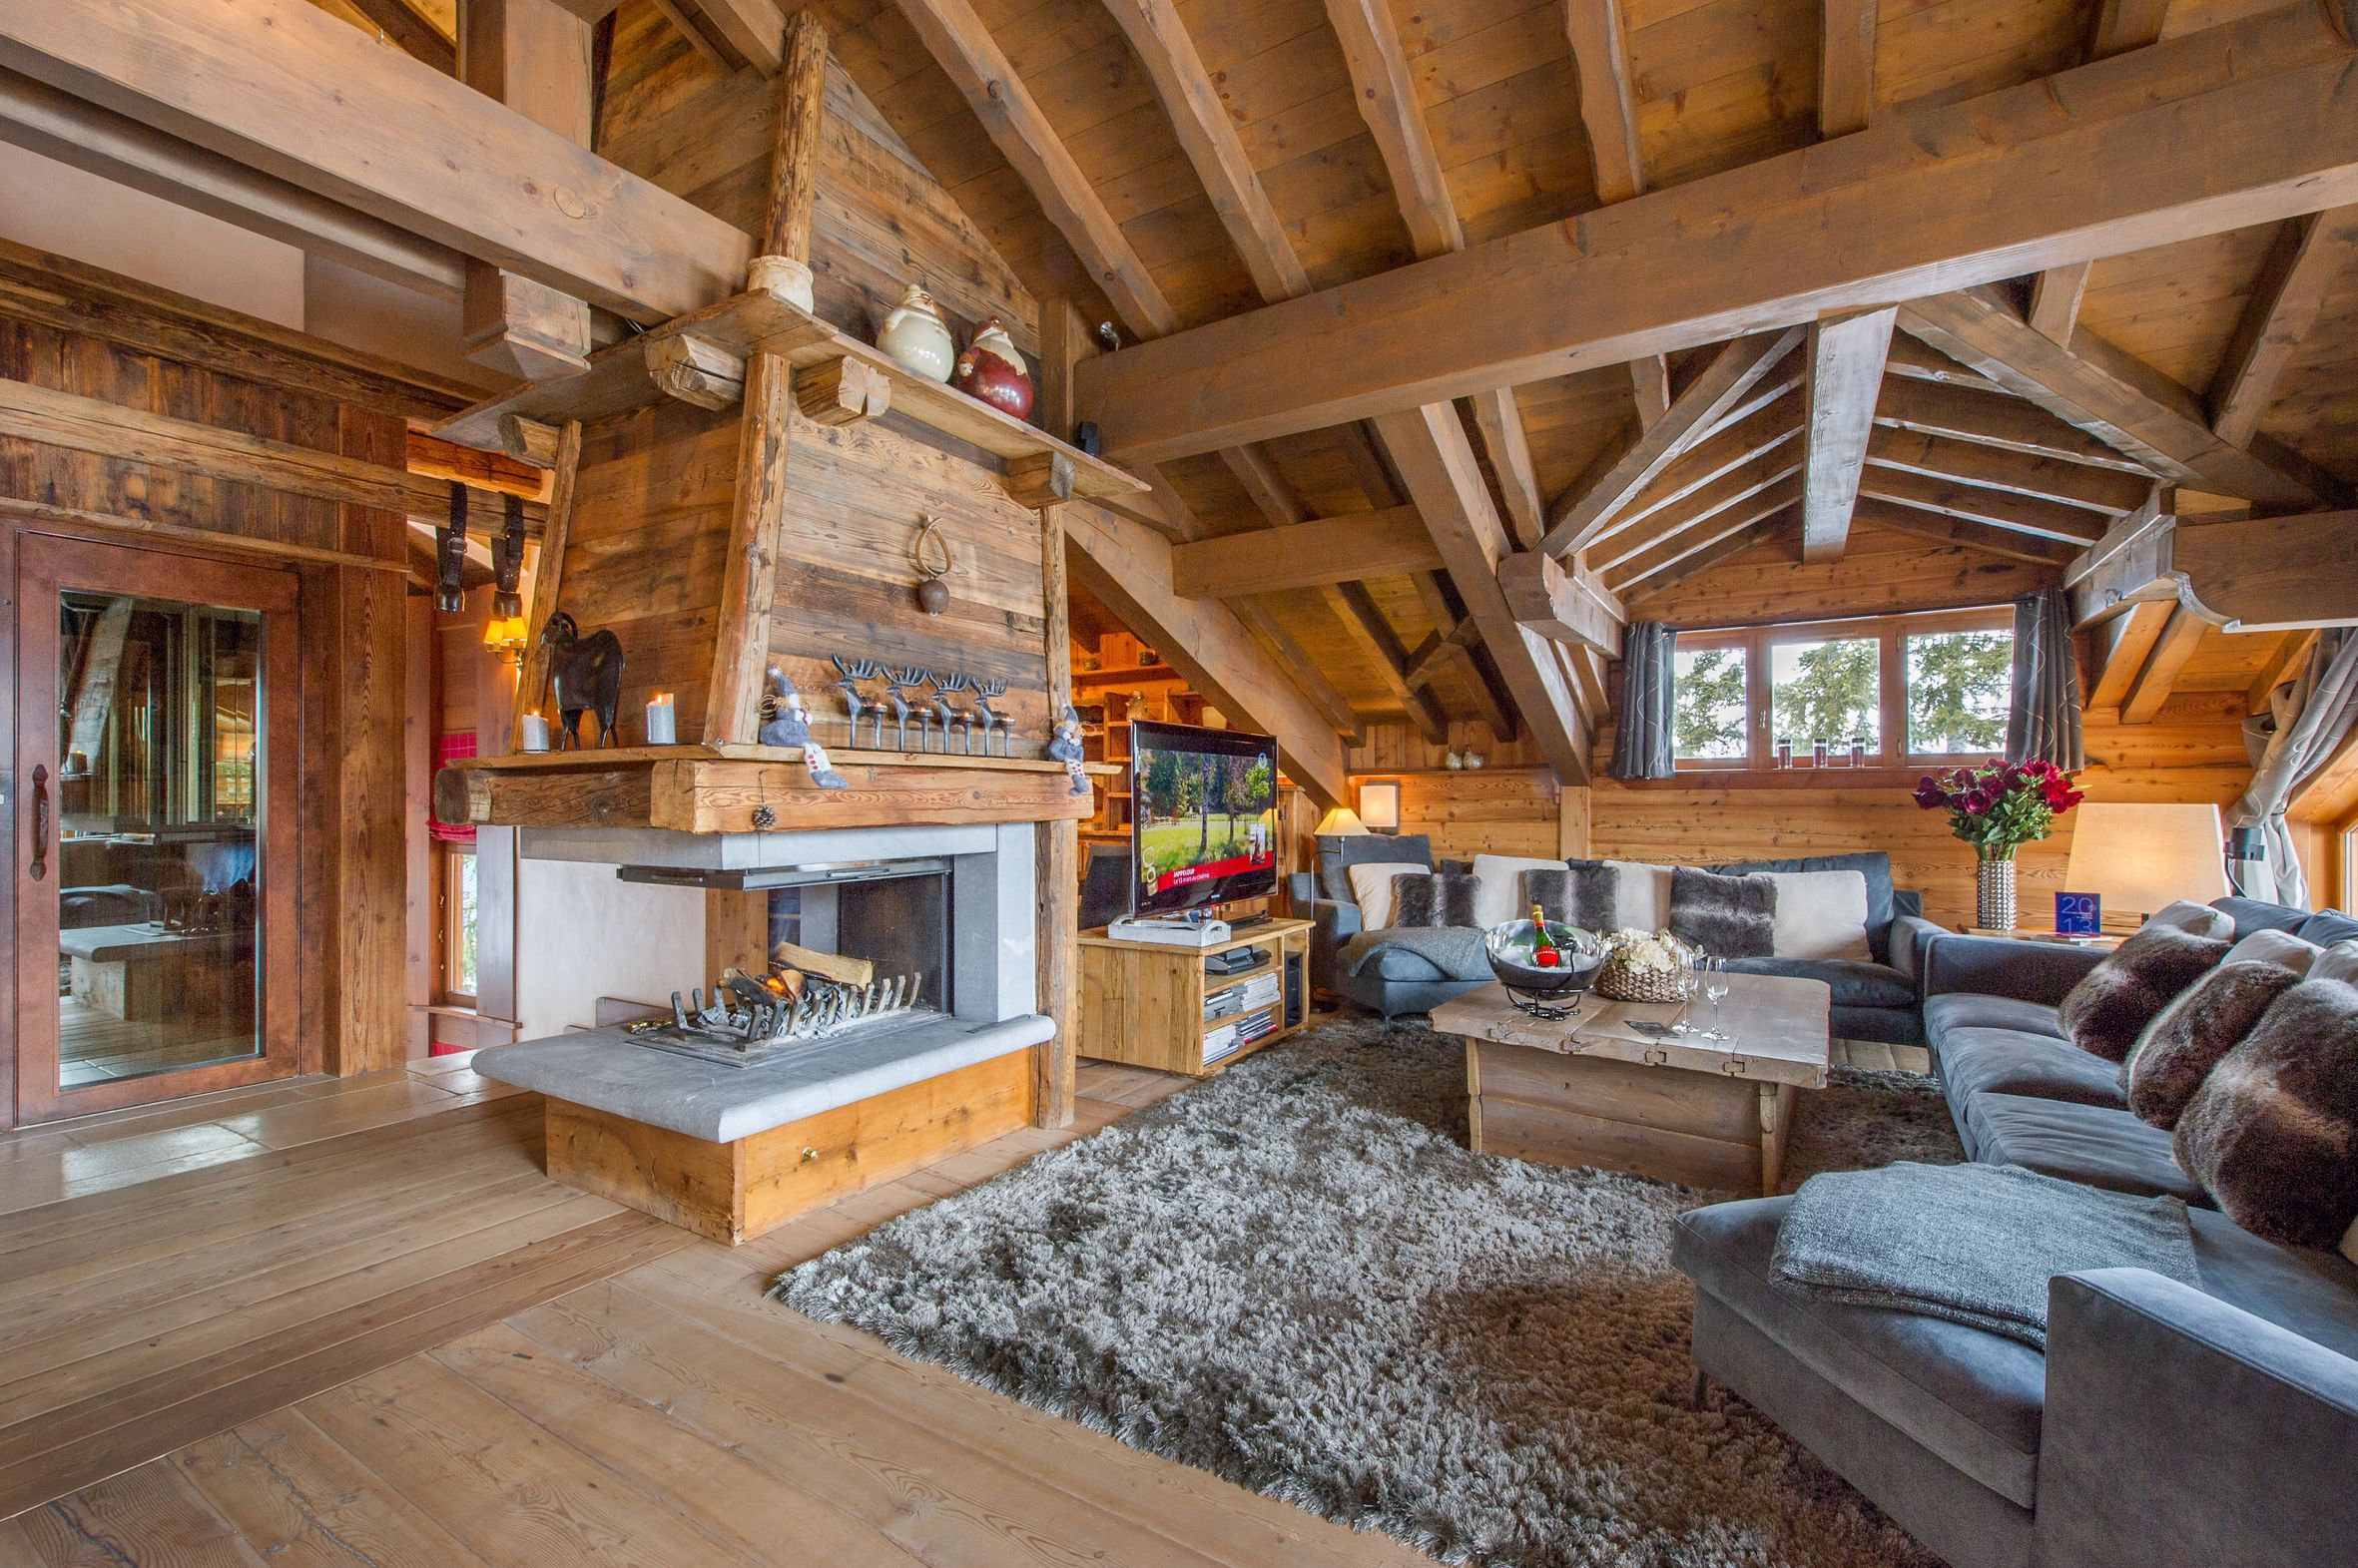 Location chalet courchevel 1850 12 personnes monic1204 - Interieur chalet montagne ...